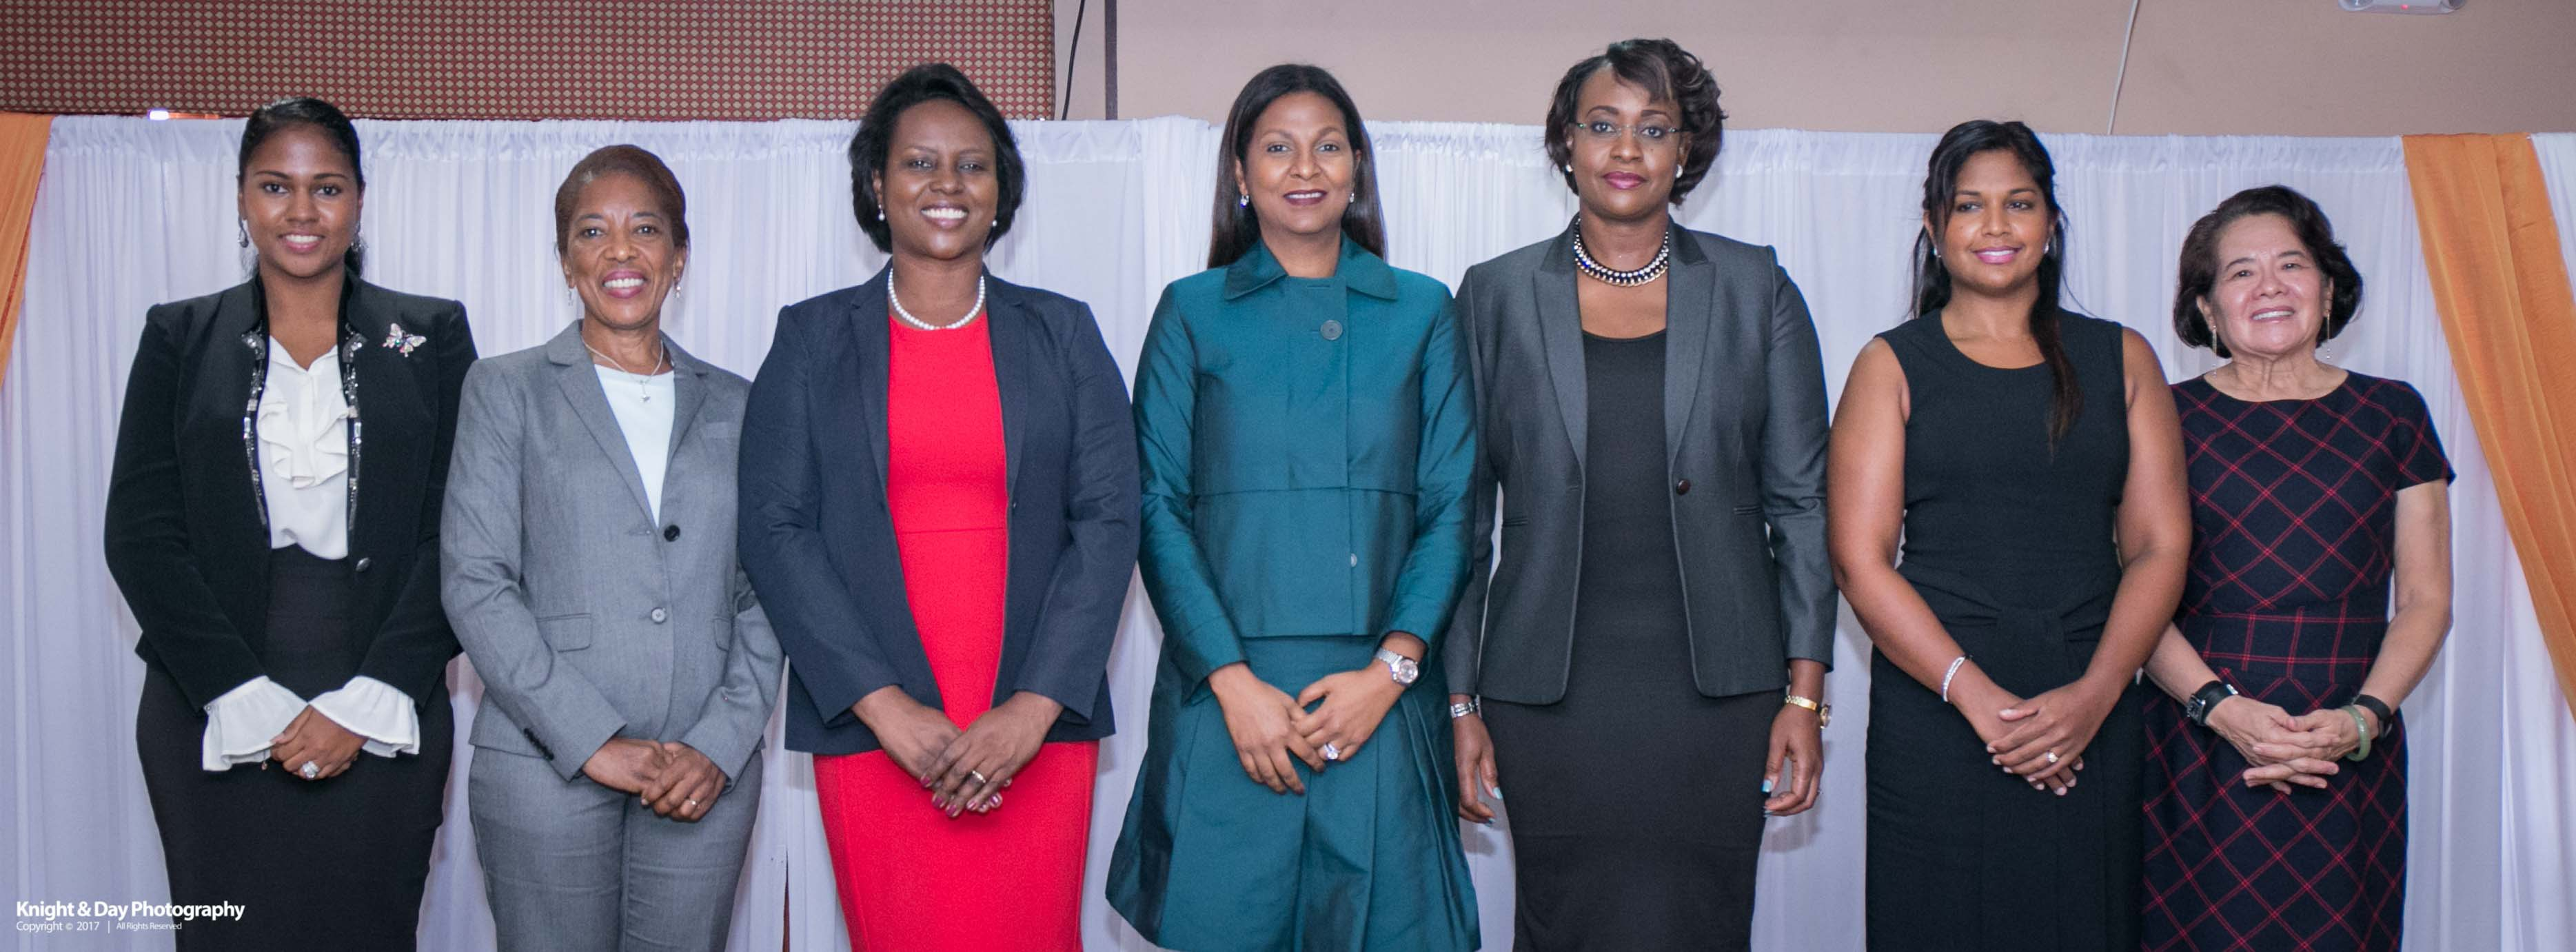 Members of the Spouses of Caribbean Leaders Action Network (SCLAN) at the launch